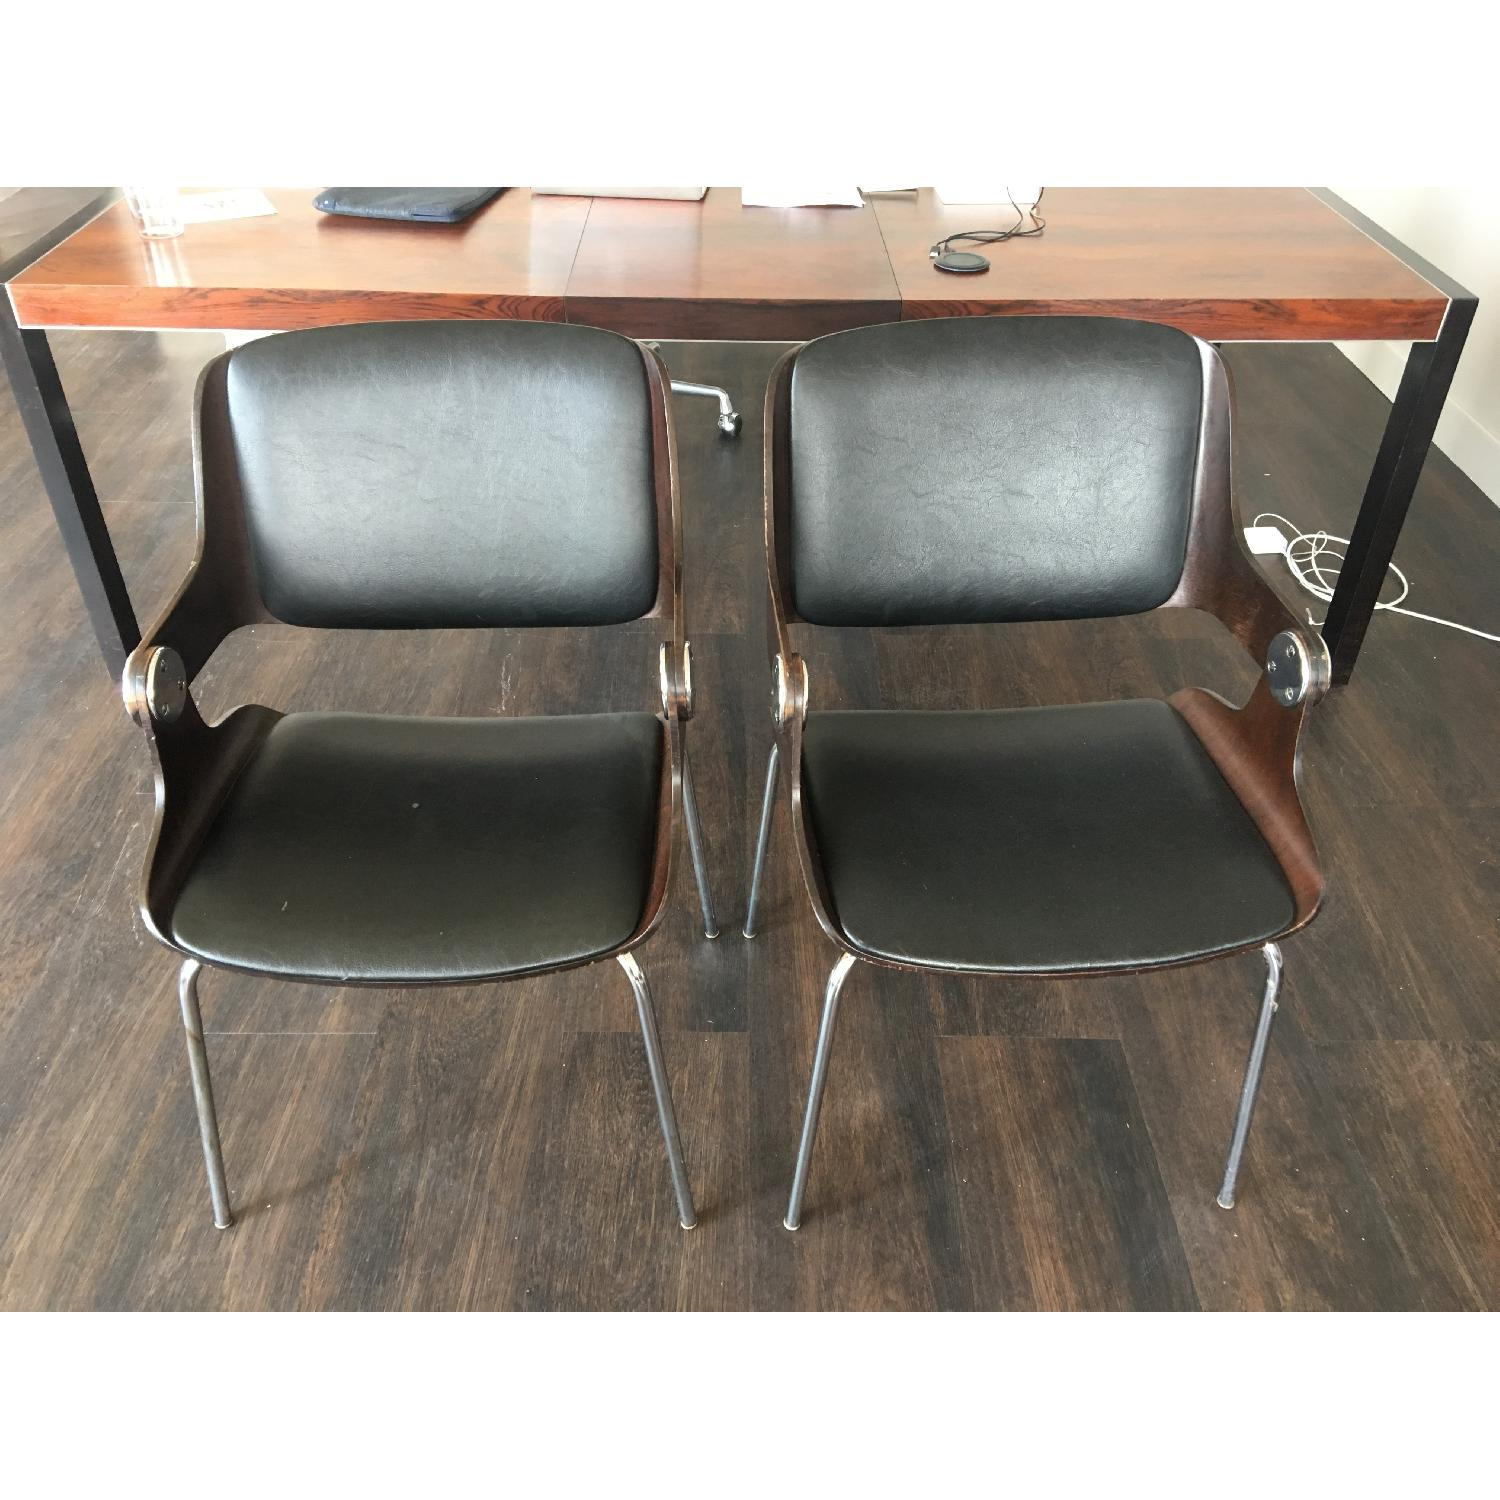 upholstered office chairs. Perfect Office Wood Upholstered Office Chairs  Throughout